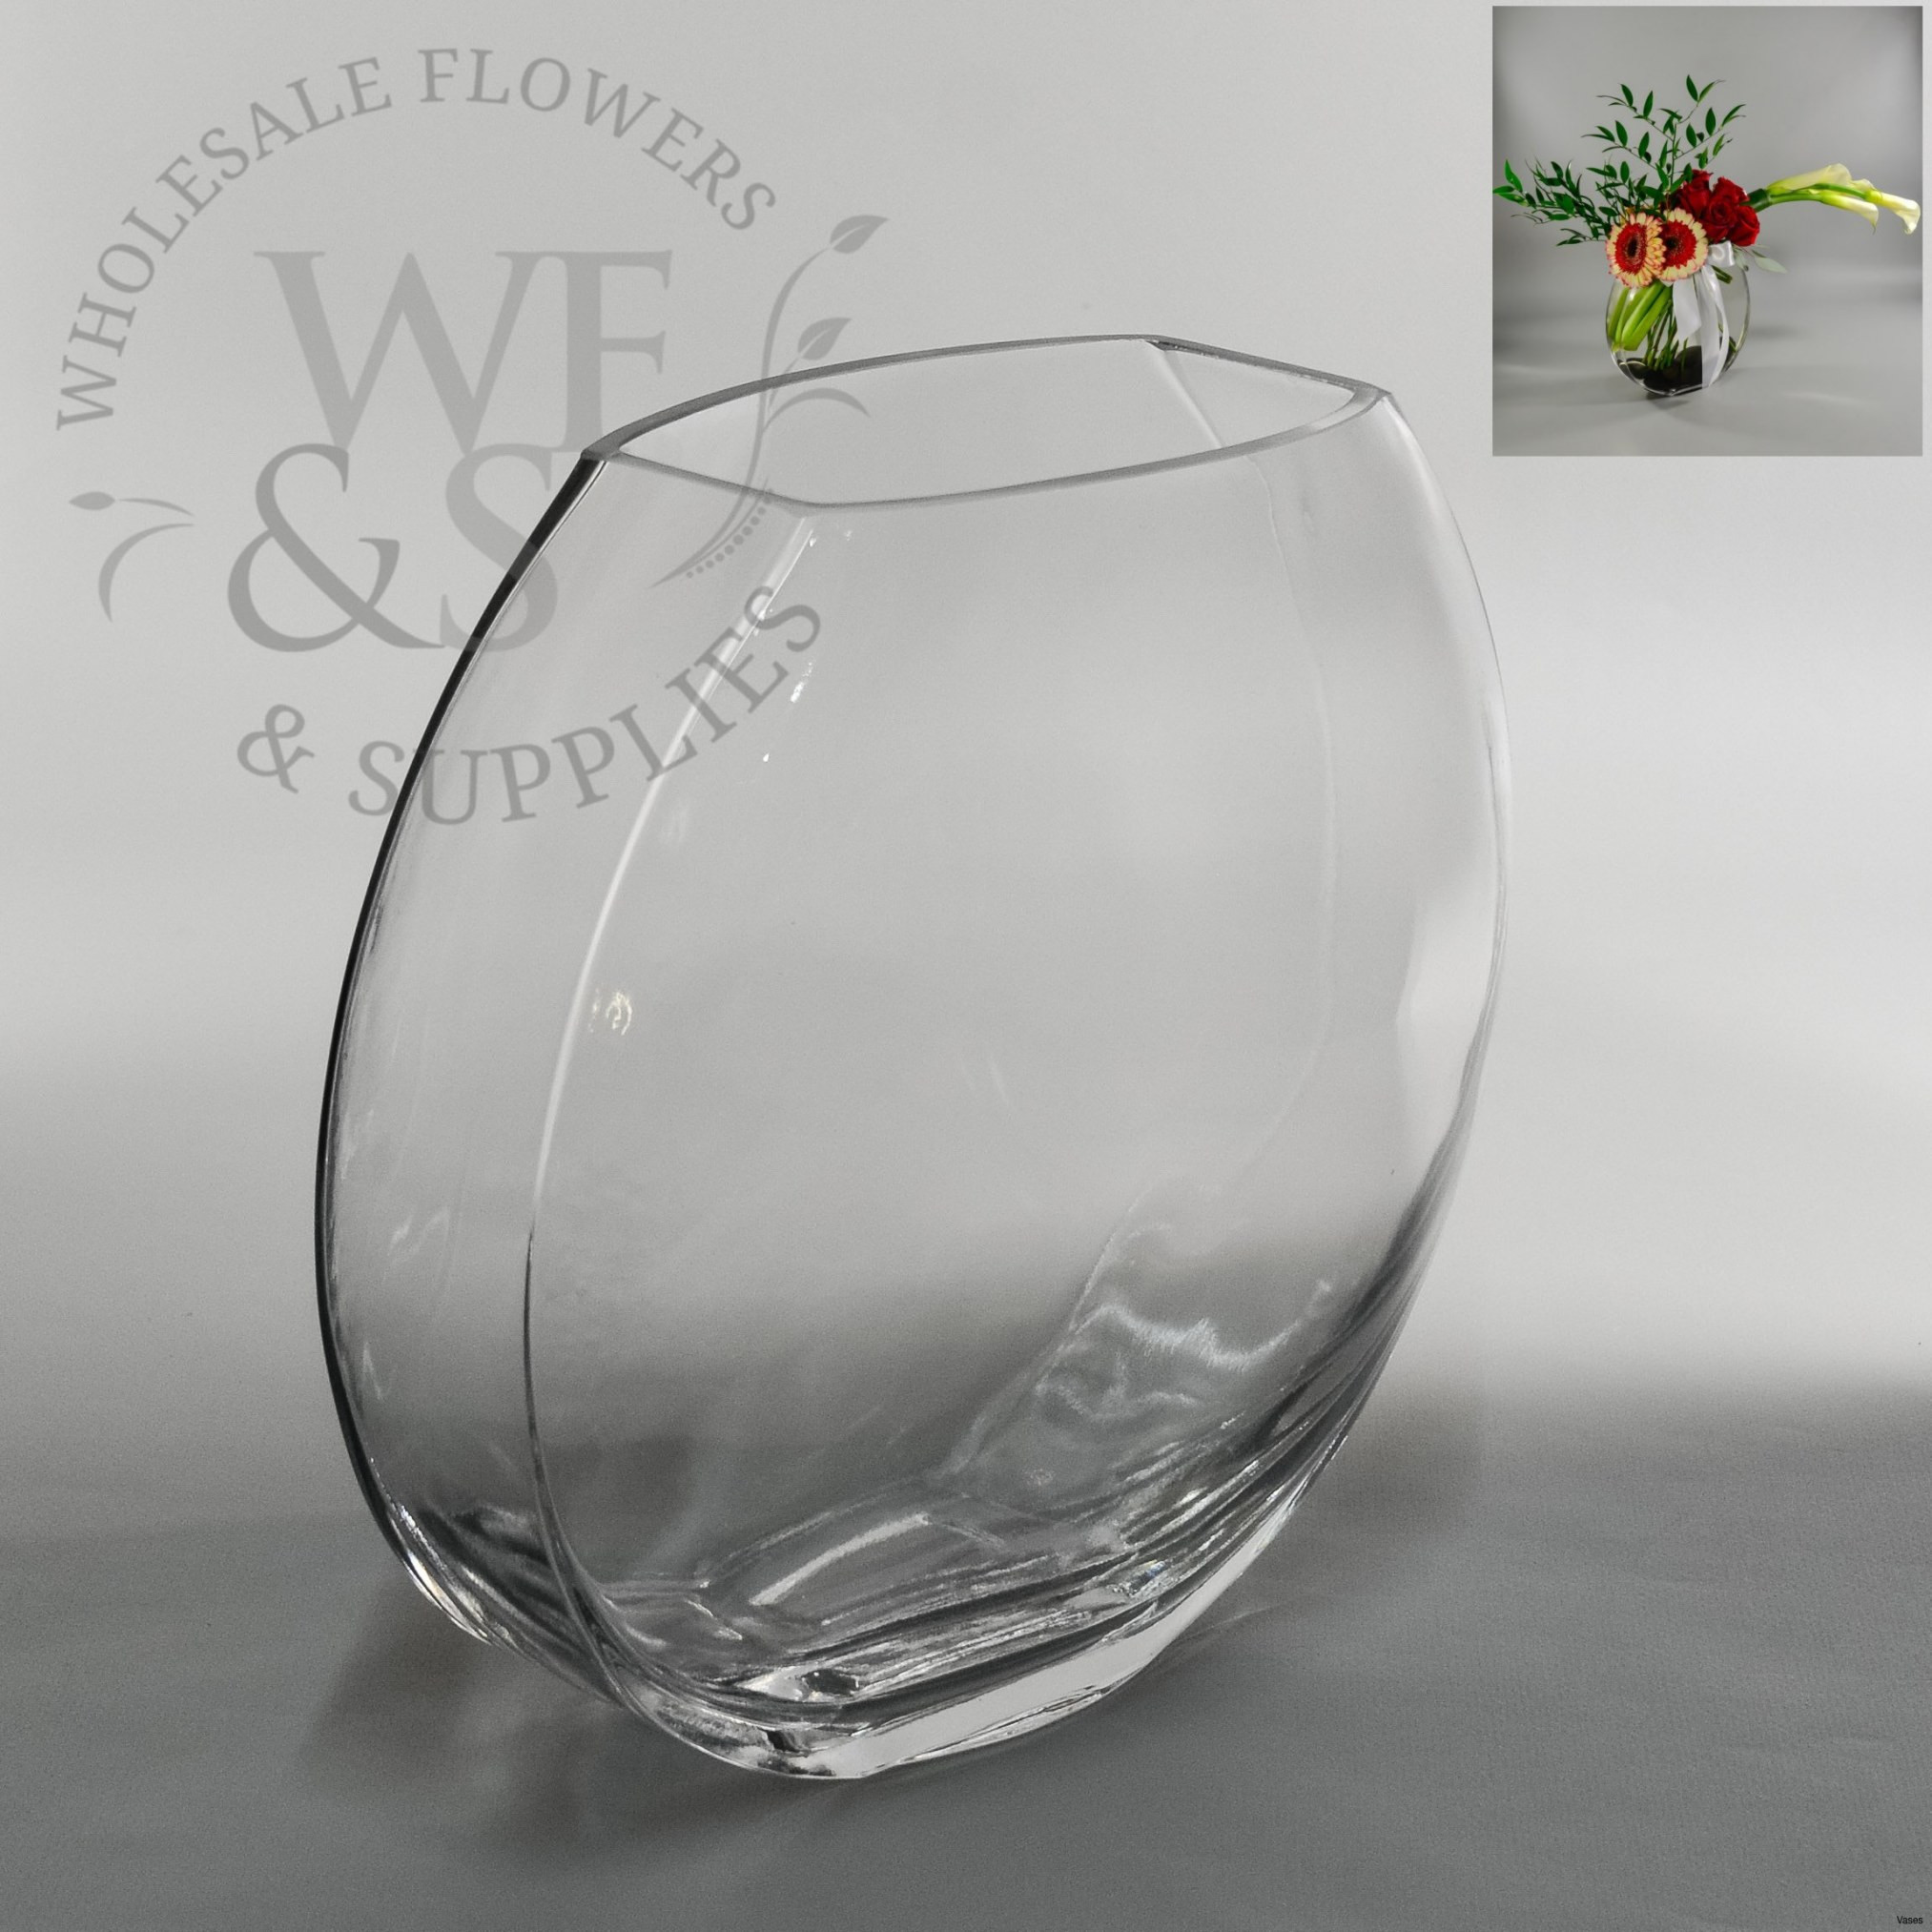 giant fish bowl vase of fish bowl vases images imgf h vases fish bowl flower vase lily with fish bowl vases collection glass fish bowl decoration aquarium design vbw0916 hwh vases of fish bowl